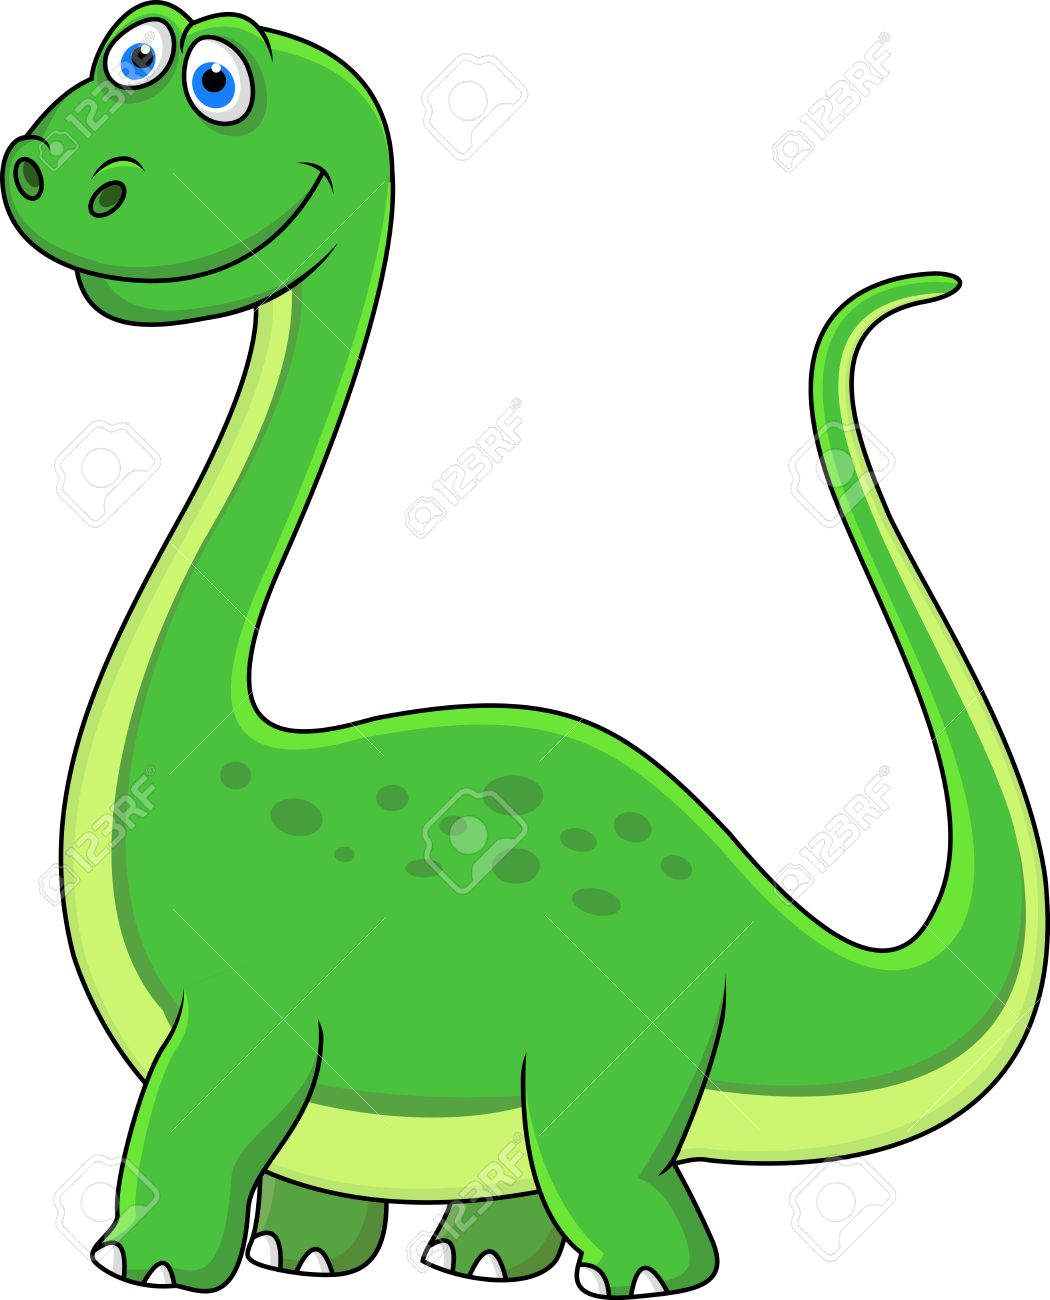 Dinosaur cartoon Stock Vector - 15234277